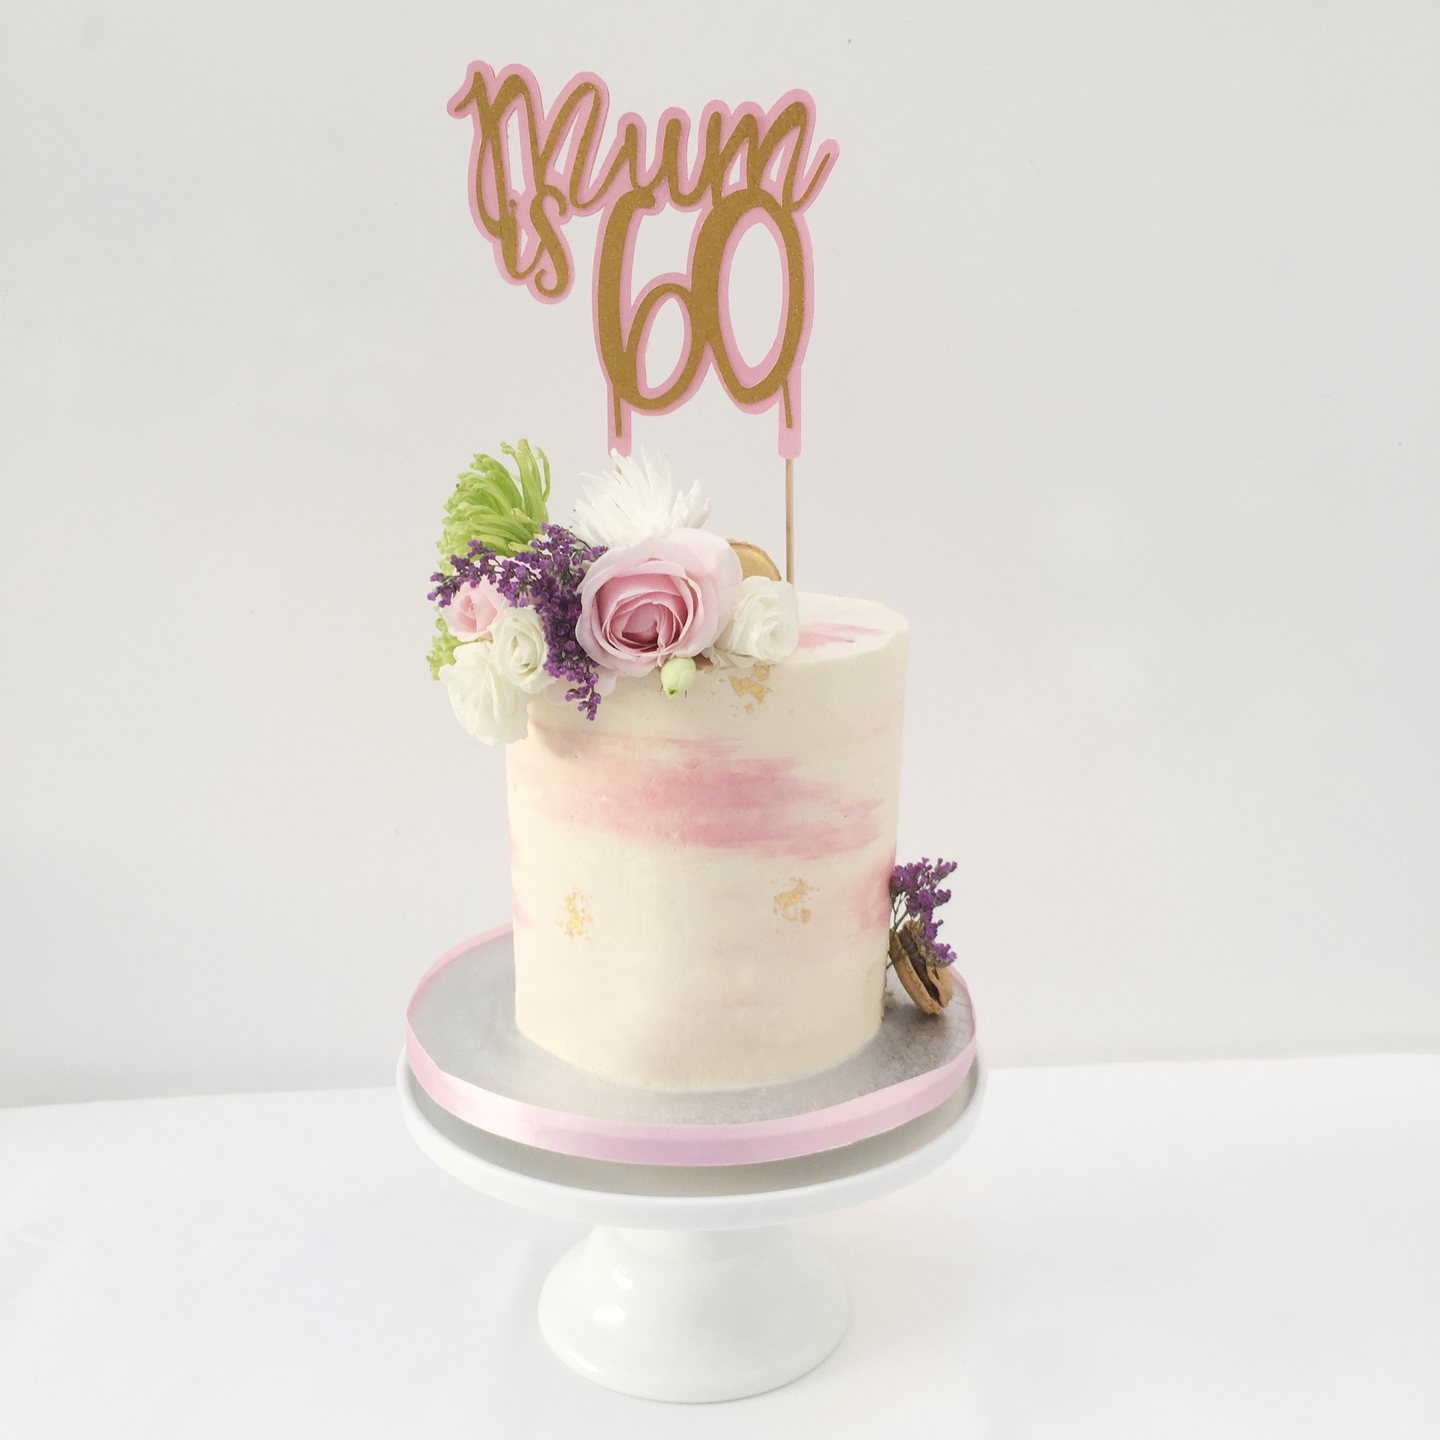 6 Inch Barrel Cake With Fresh Flowers Edible Gold Leaf And Personalised Topper